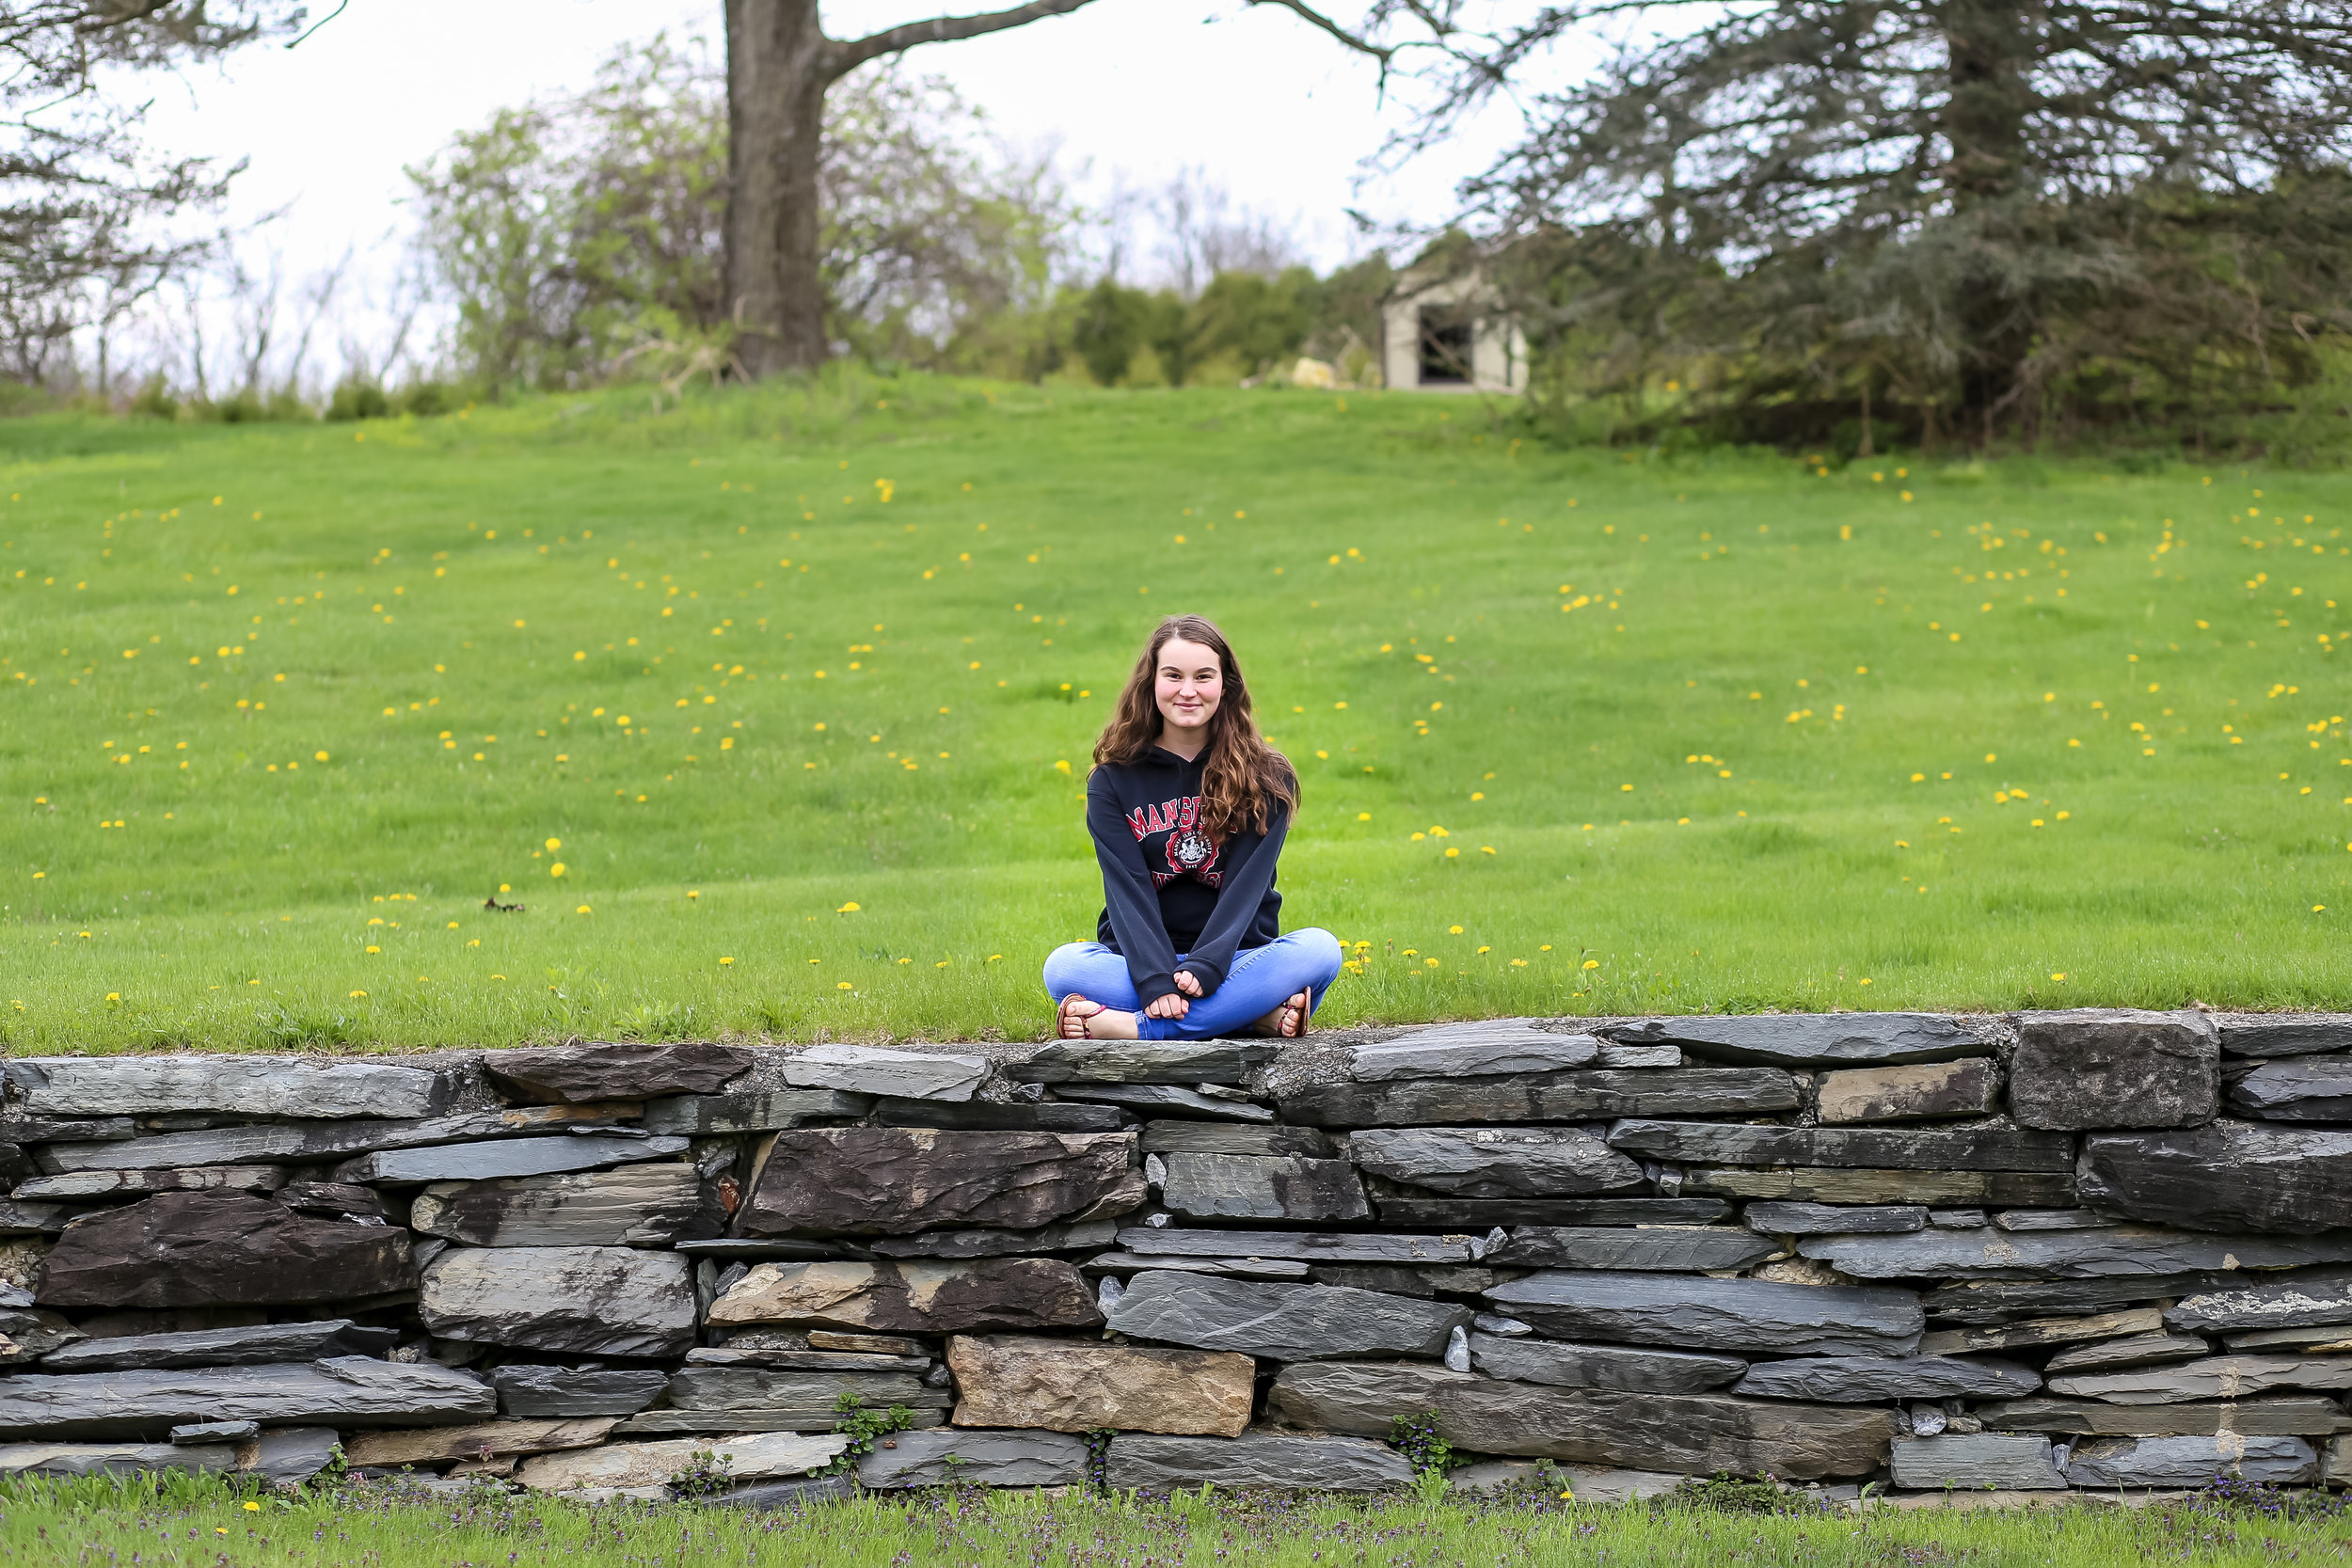 Senior photo session with Jen Grima Photography in Lehigh Valley, PA.